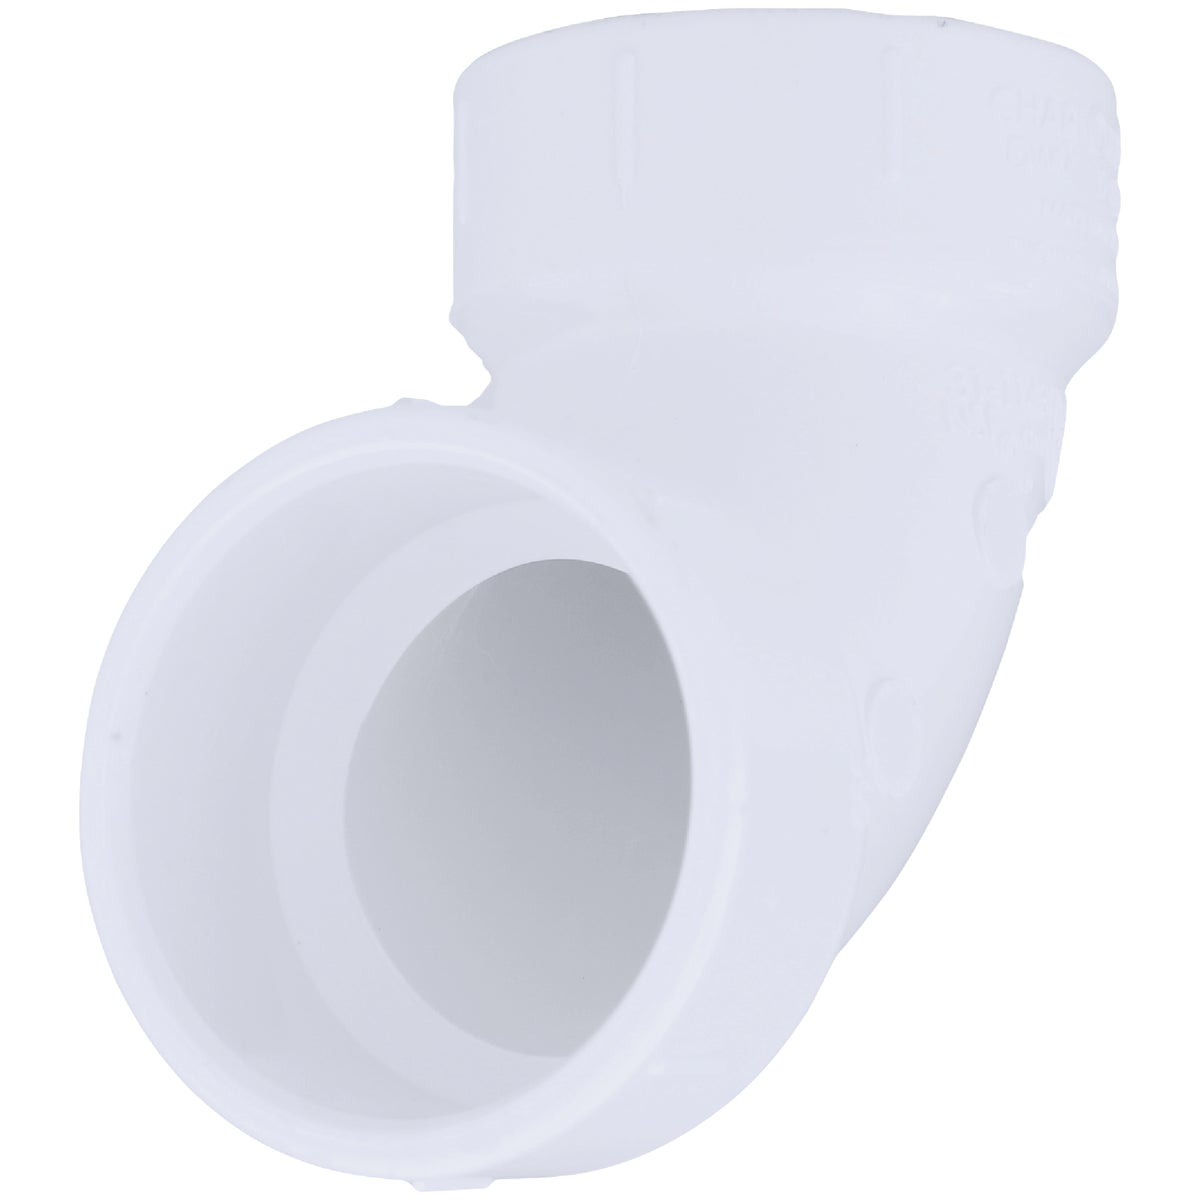 "1-1/4""90D DWV SANI ELBOW - 72814 by Genova Inc  Pvc Dwv"